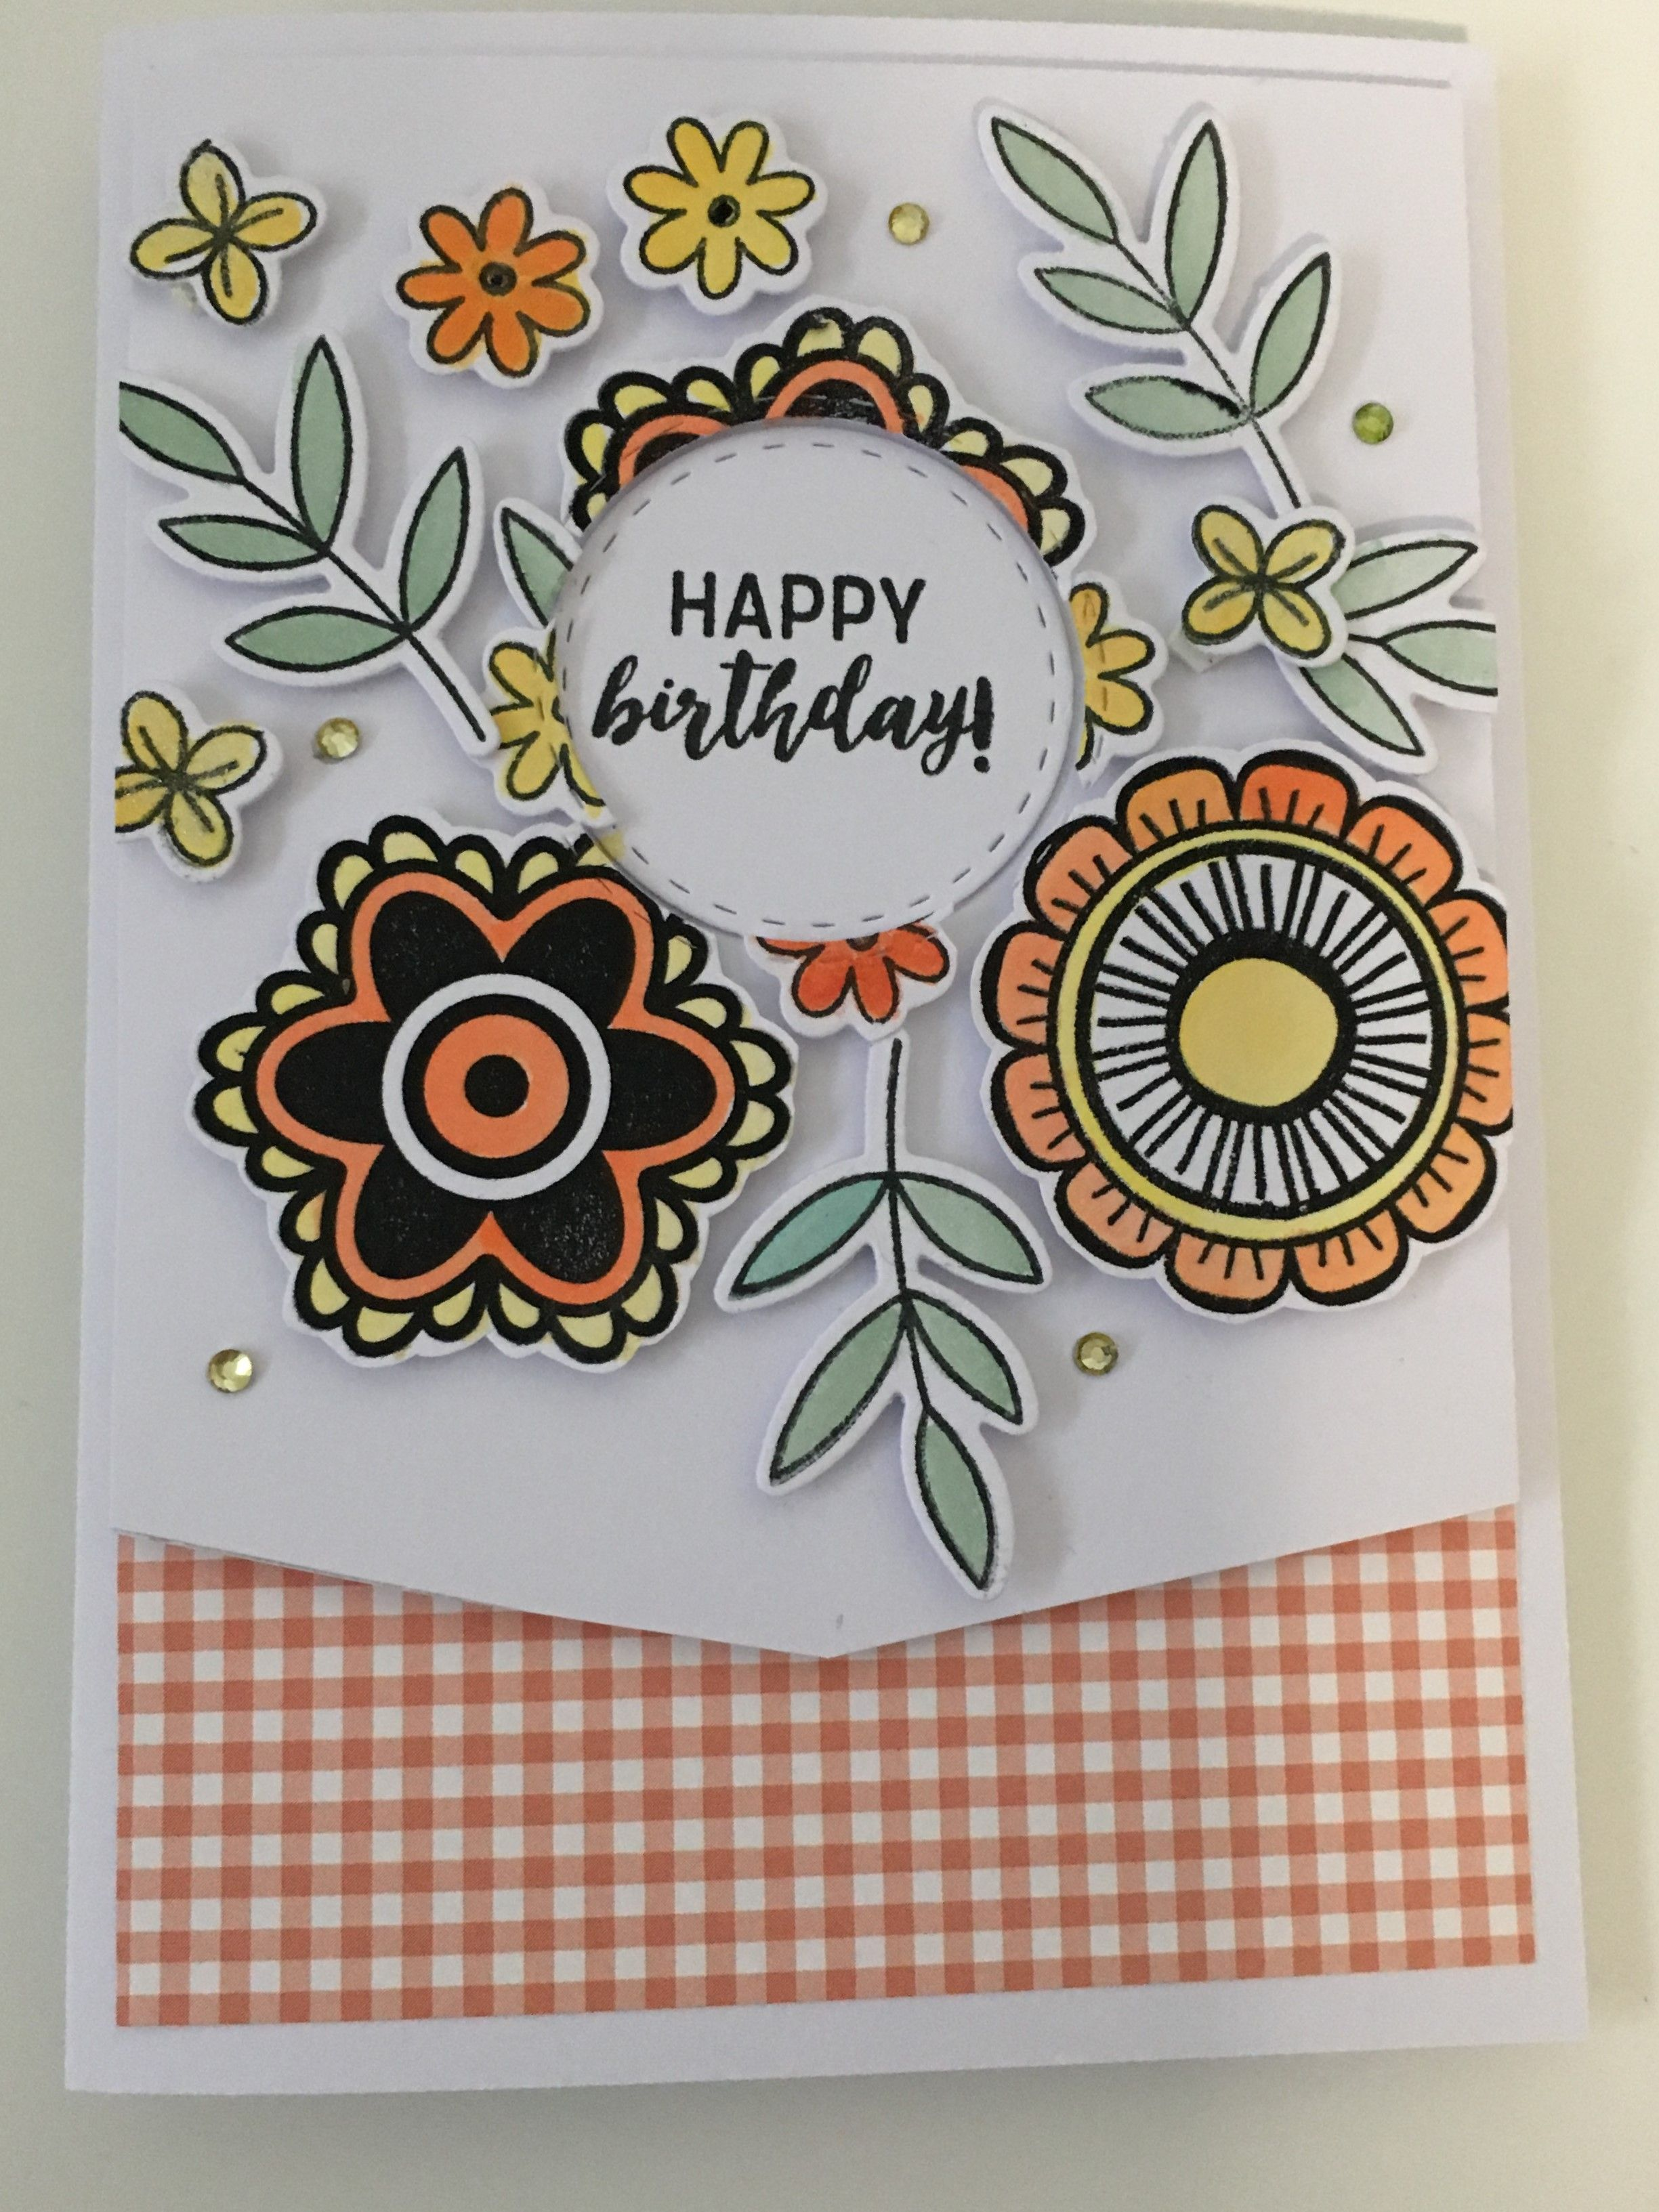 Pin by Miriam Shaw on My homemade cards (With images ...